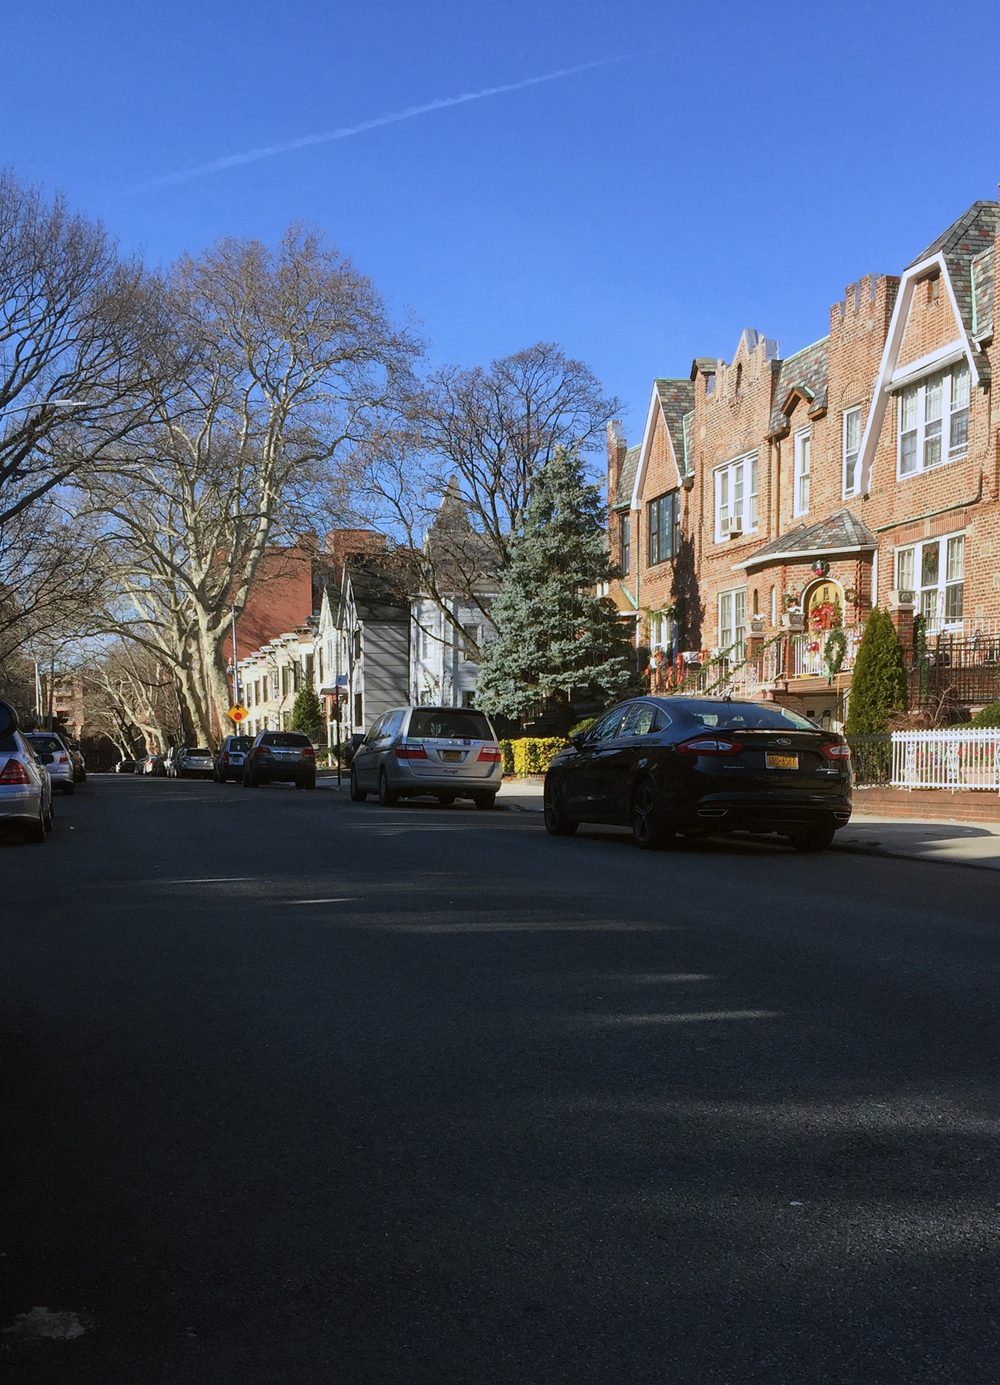 Looking west on 92nd Street towards Marine Avenue on a sunny last day of autumn - December 20, 2015